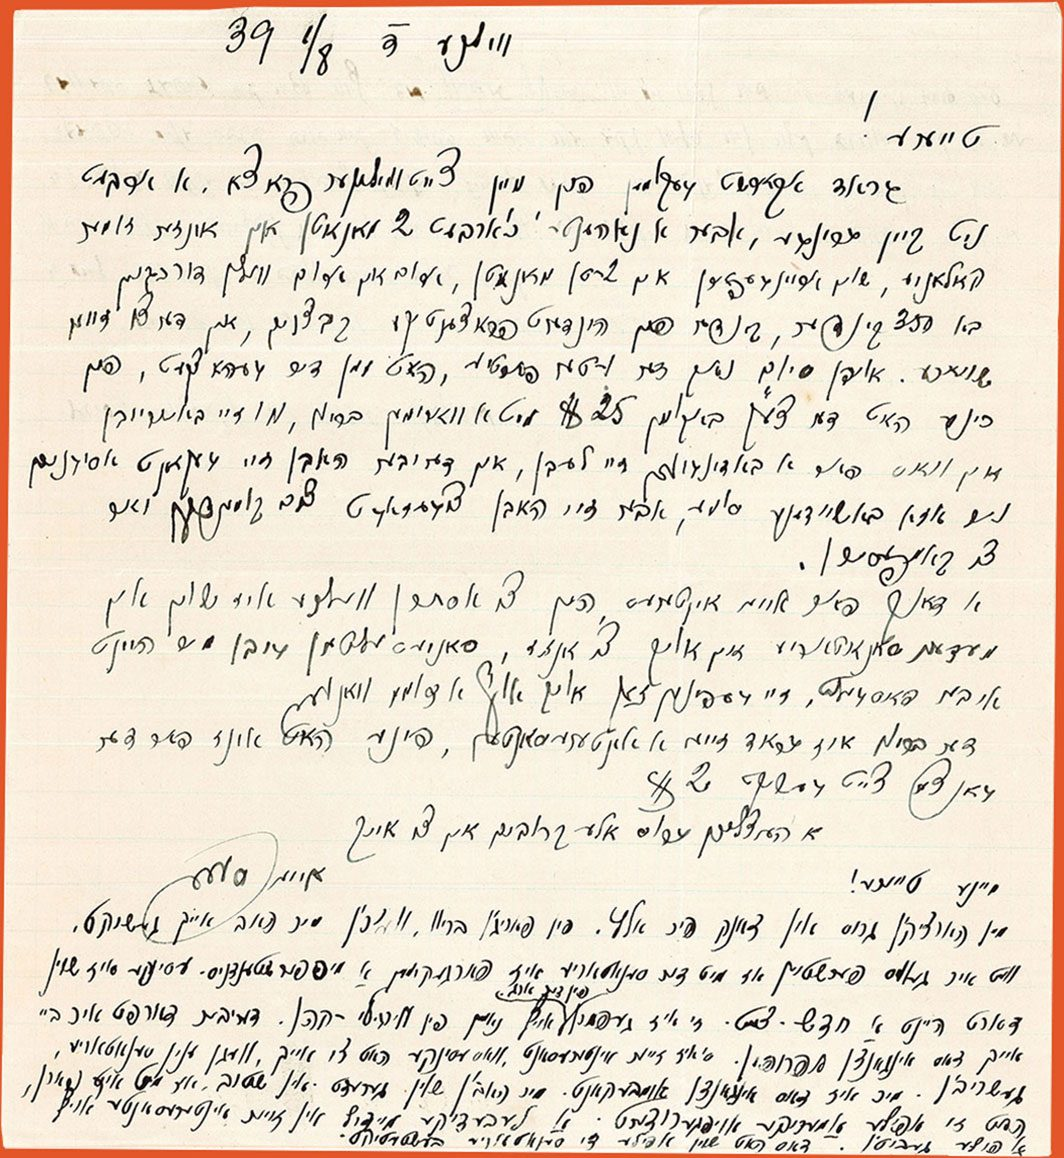 First page of a letter from Beba's parents